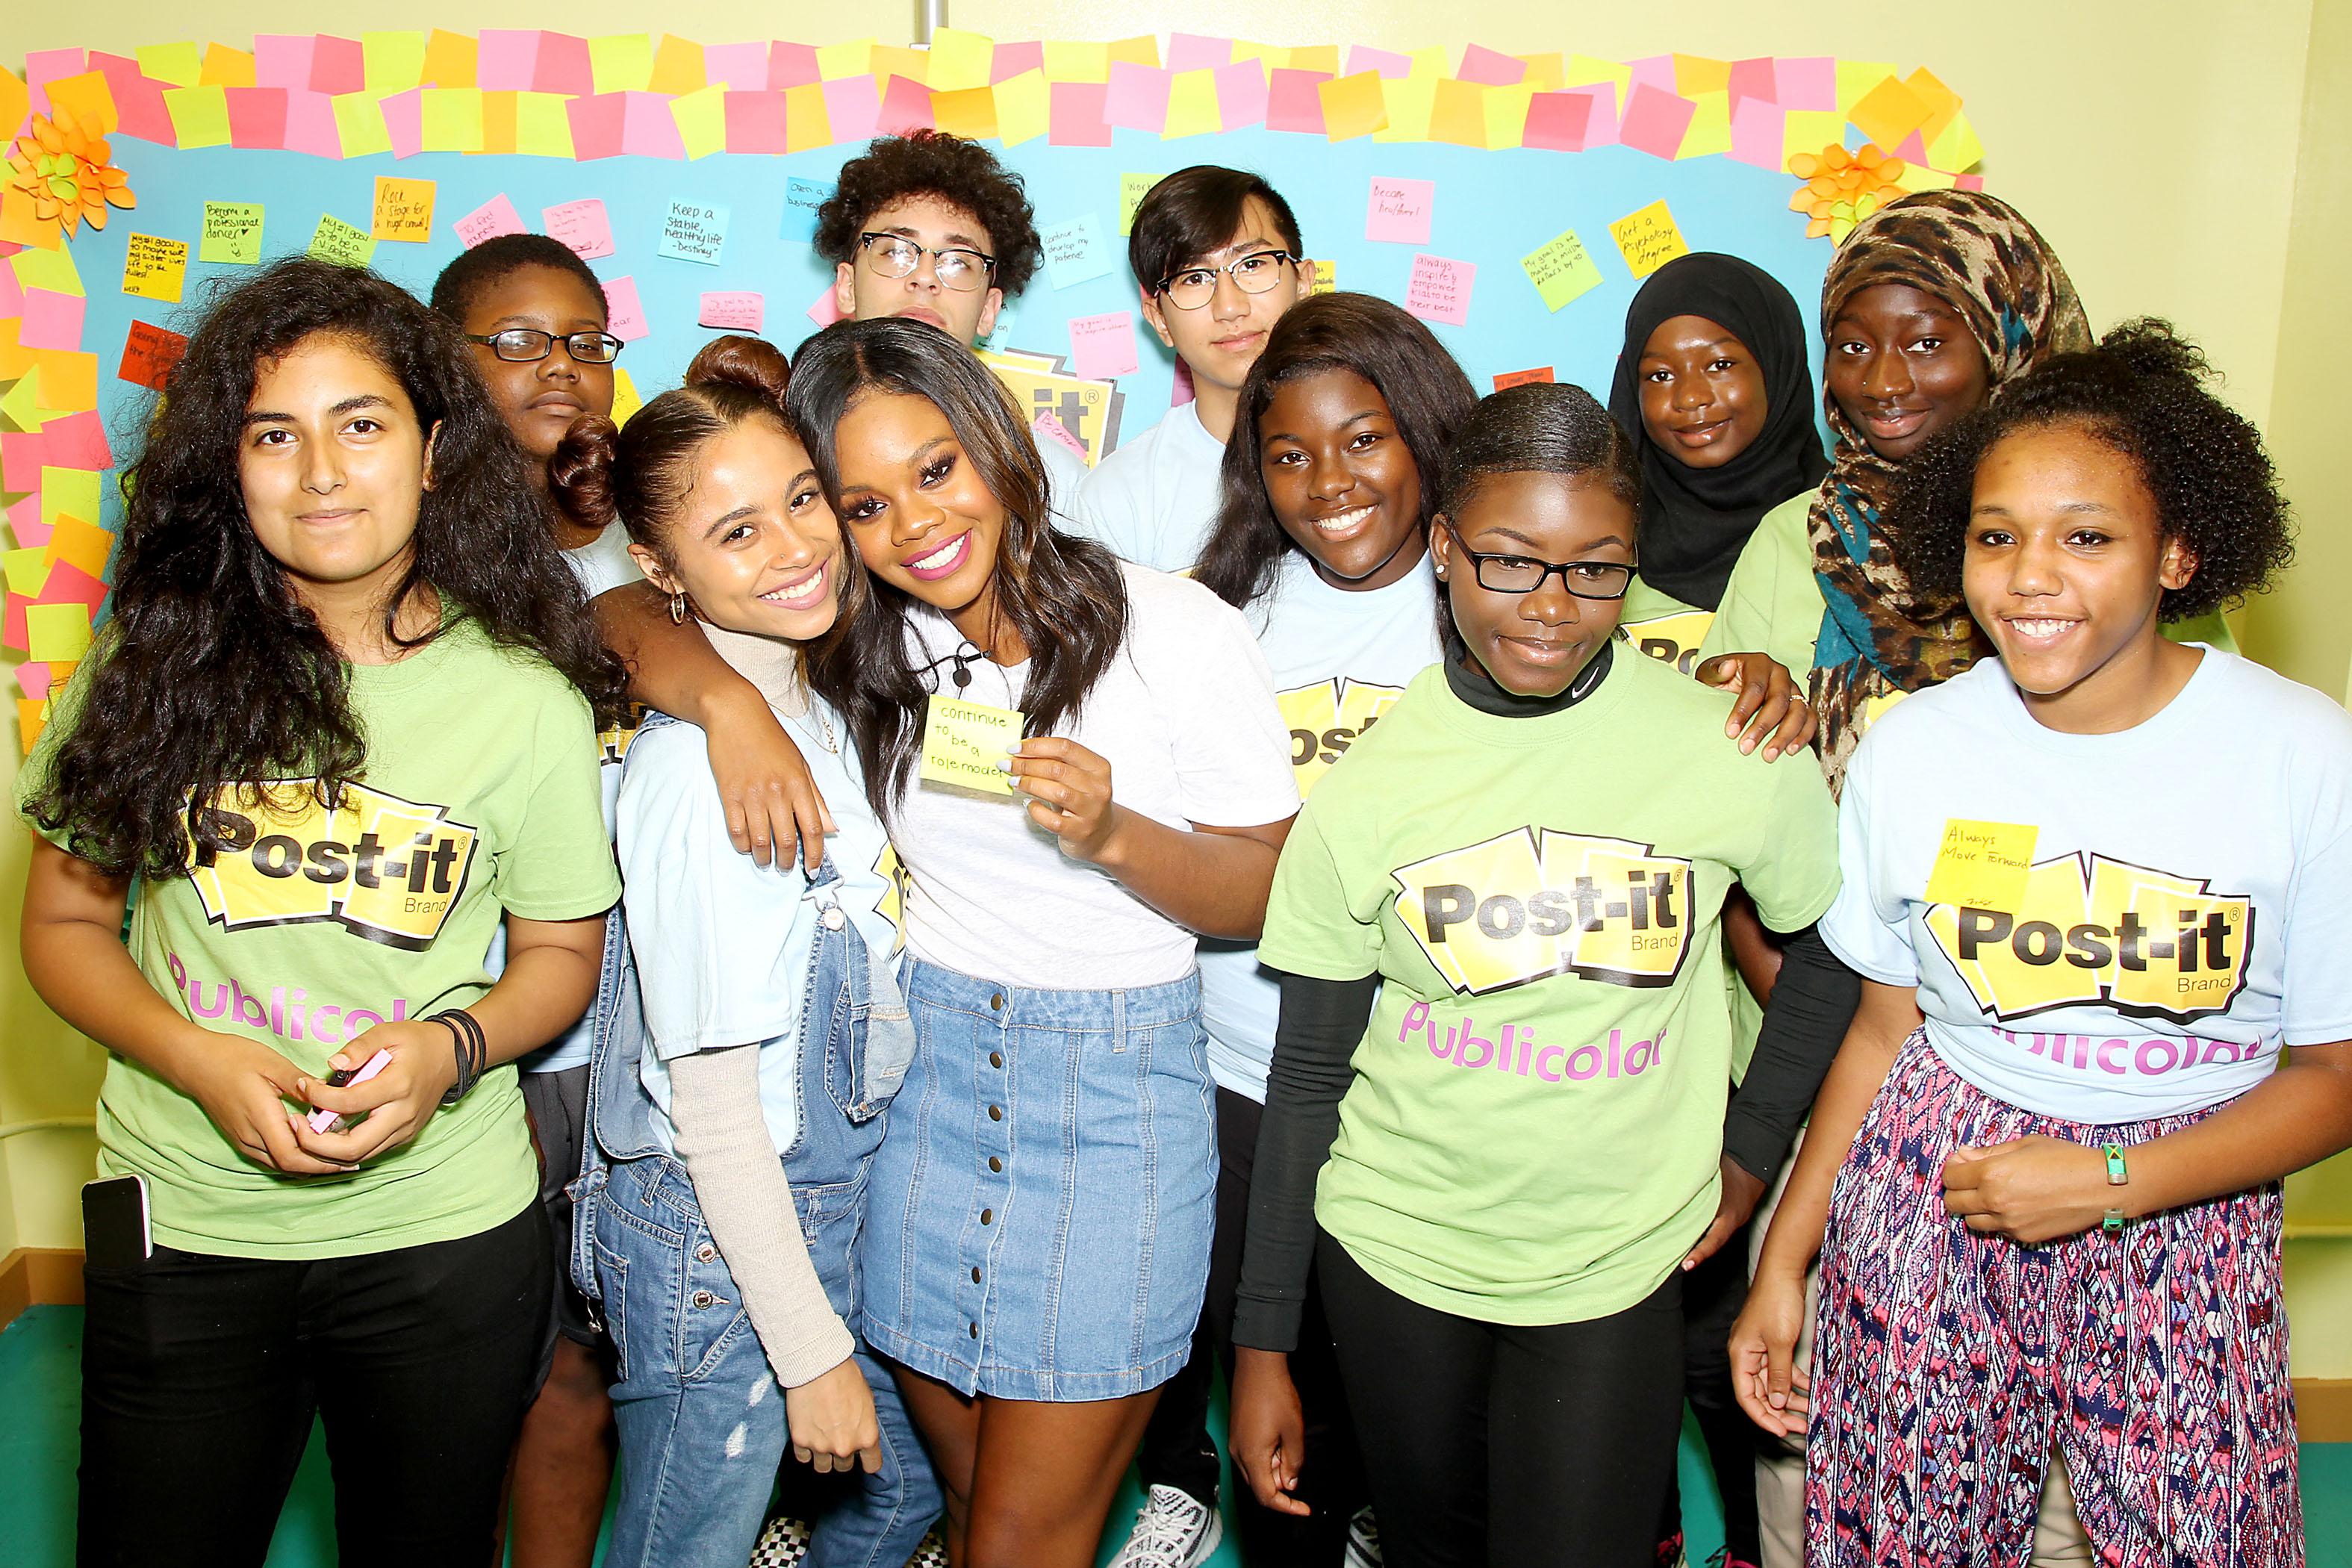 Star, Ok magazine, In Touch, Life and Style, Out - New York, NY - 7/25/17 -  Gabby Douglas and Post-it Brand talk to kids at Publicolor about how to Make it Stick during Back to School   -Pictured: Gabby Douglas with Publicolor kids -Photo by: Marion Curtis/StarPix -Location: Publicolor NYC